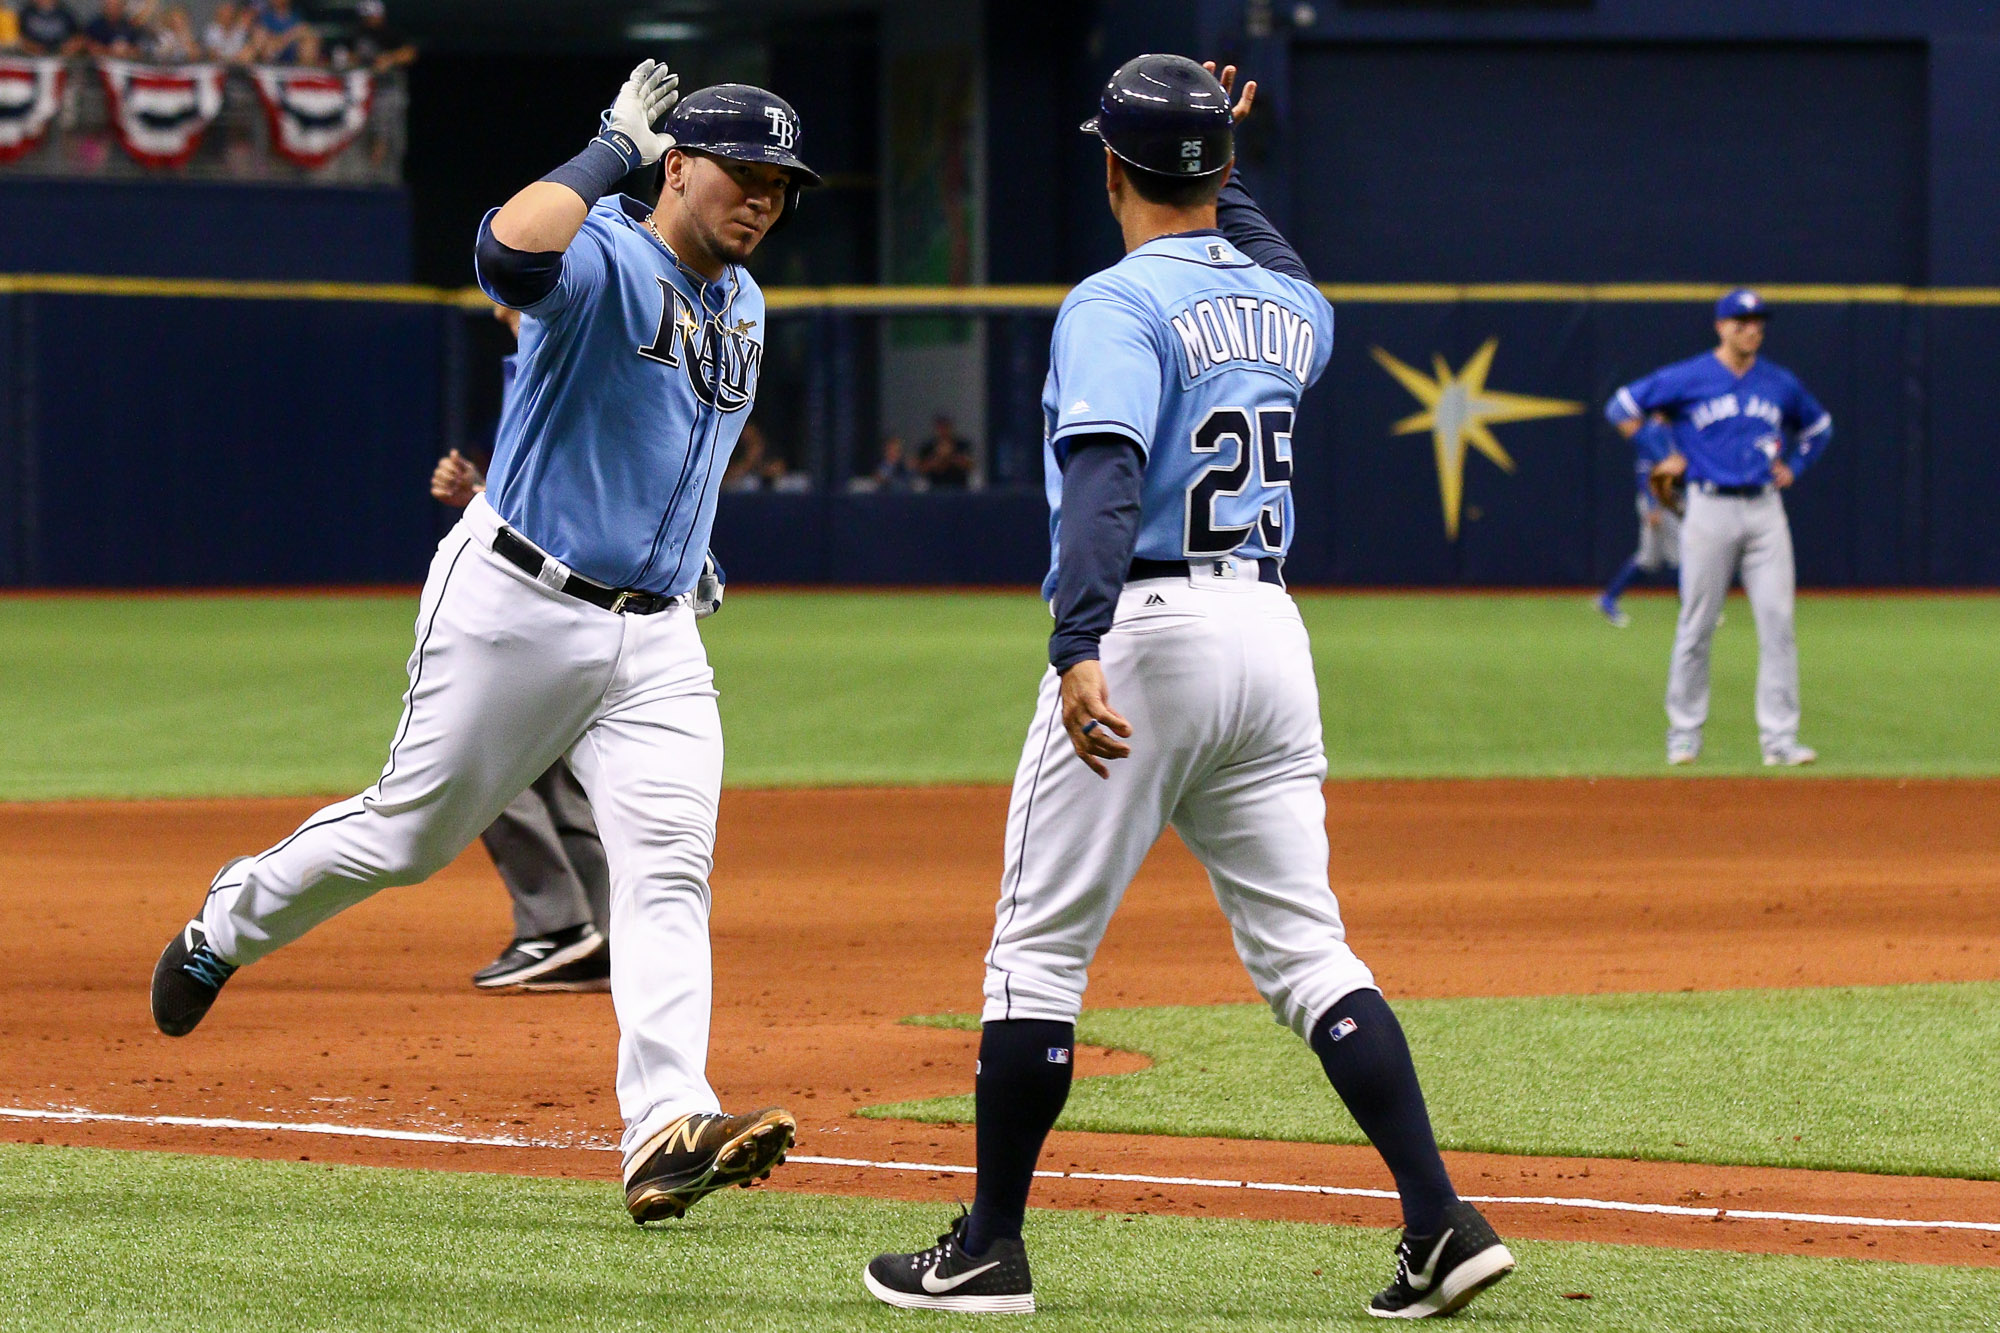 Jesús Sucre rounds the bases after hitting a solo home run in the 4th - his first hit as a Ray./ANDREW J. KRAMER